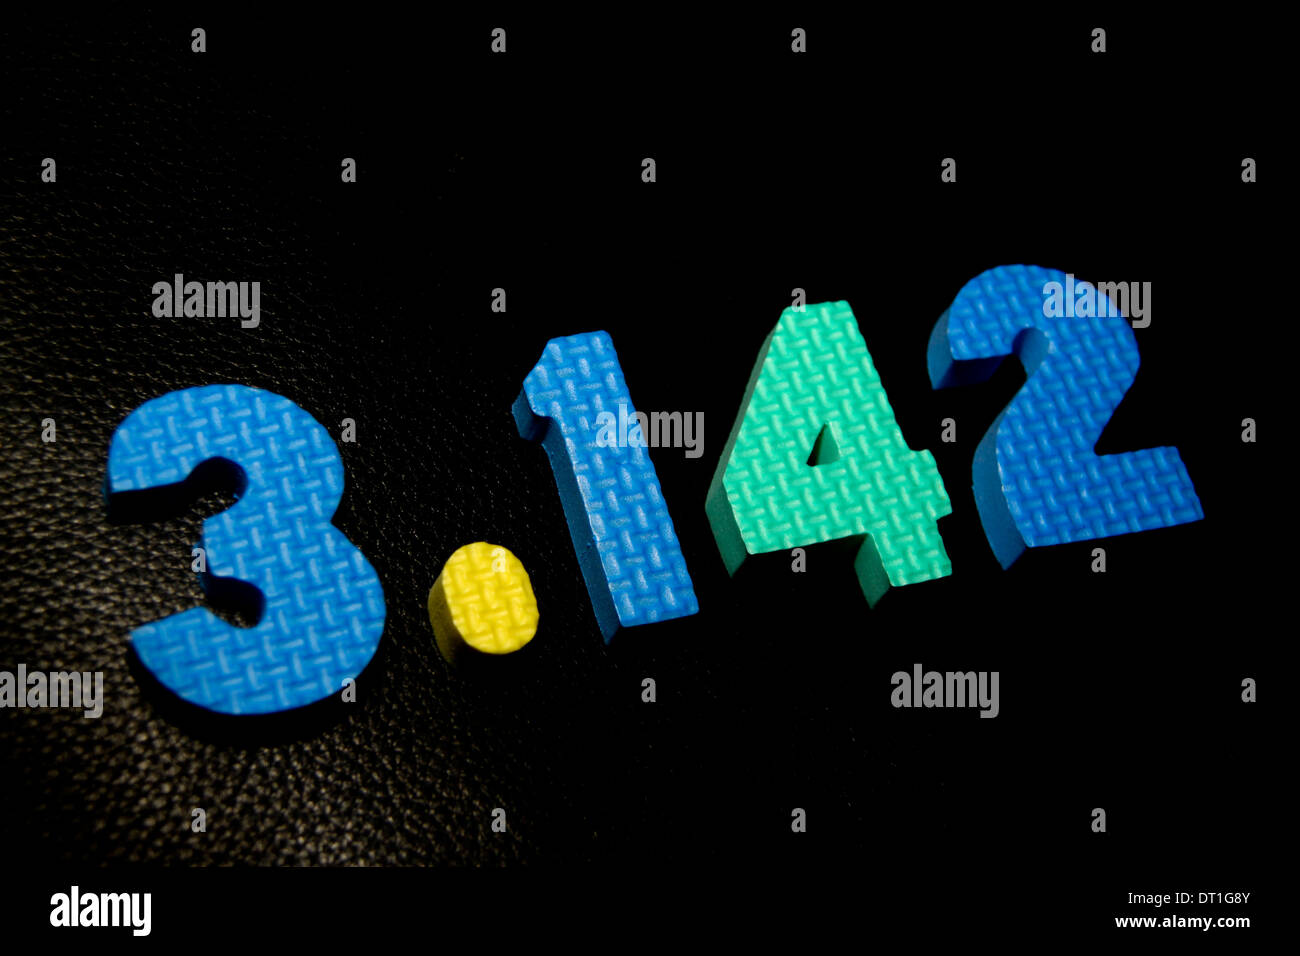 Value of Pi 3.142 in plastic cutout coloured numbers - Stock Image